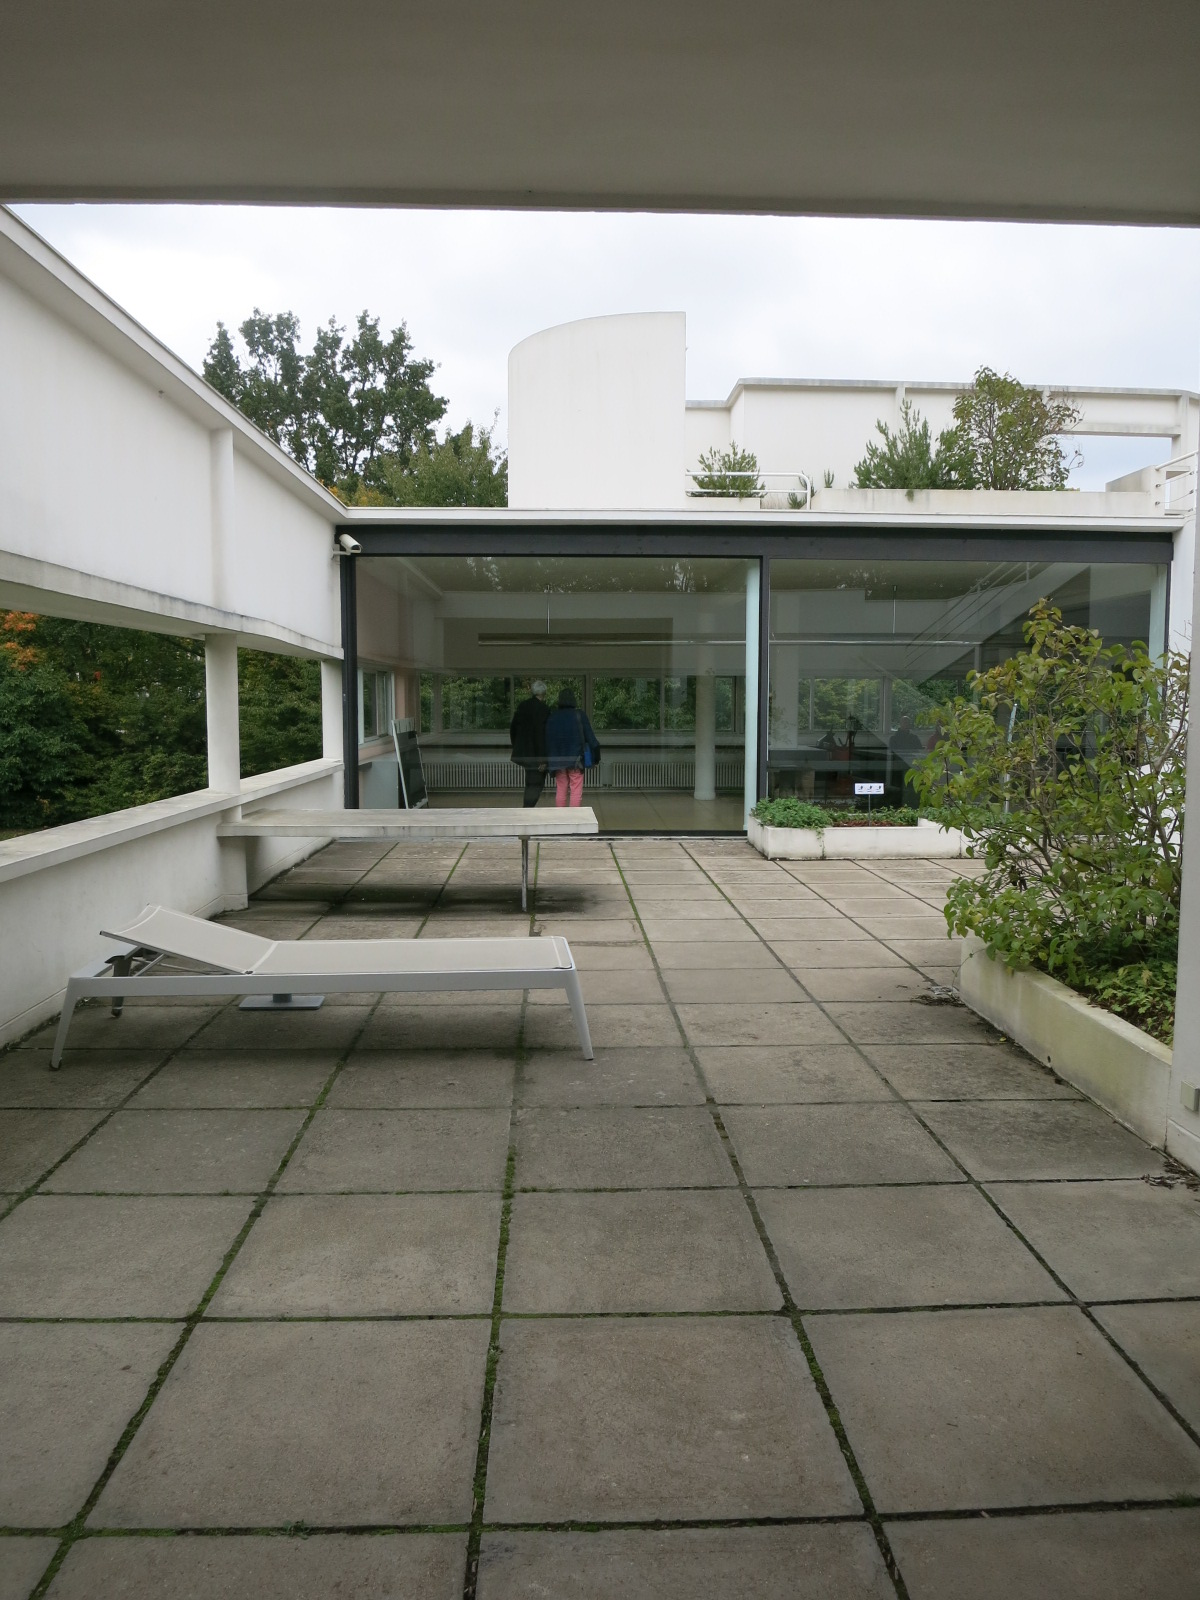 La Villa Savoye, Poissy, France. Designed by Le Corbusier and Pierre Jeanneret in 1928